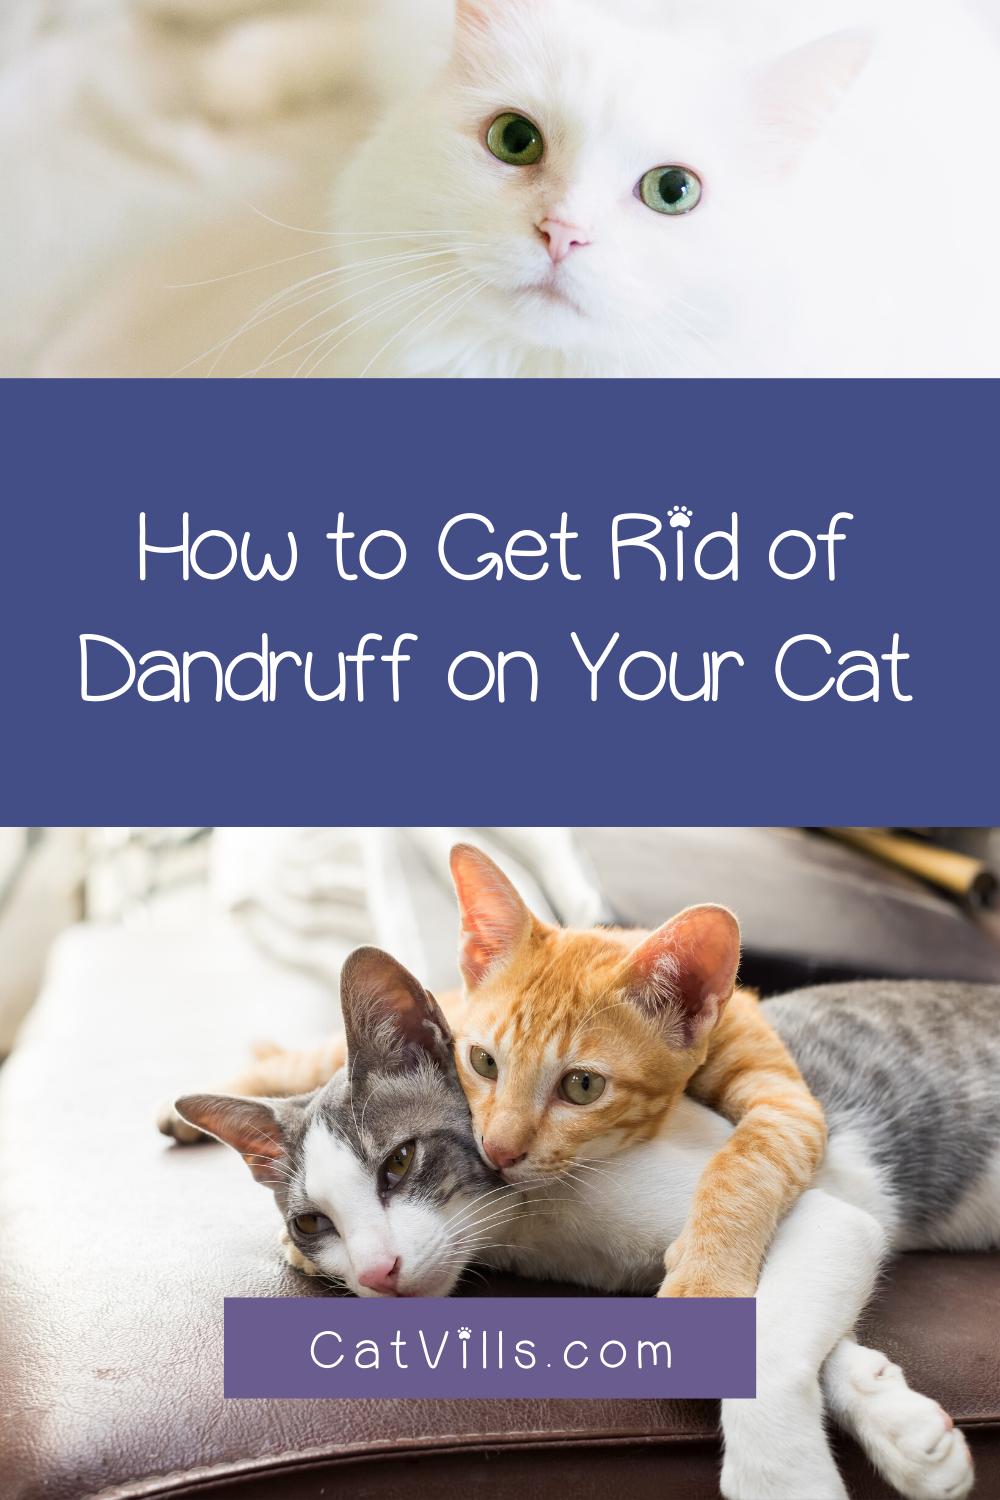 6 Easy Ways To Get Rid Of Dandruff On Your Cat Catvills In 2020 Pet Care Cats Cats Cute Cats And Kittens